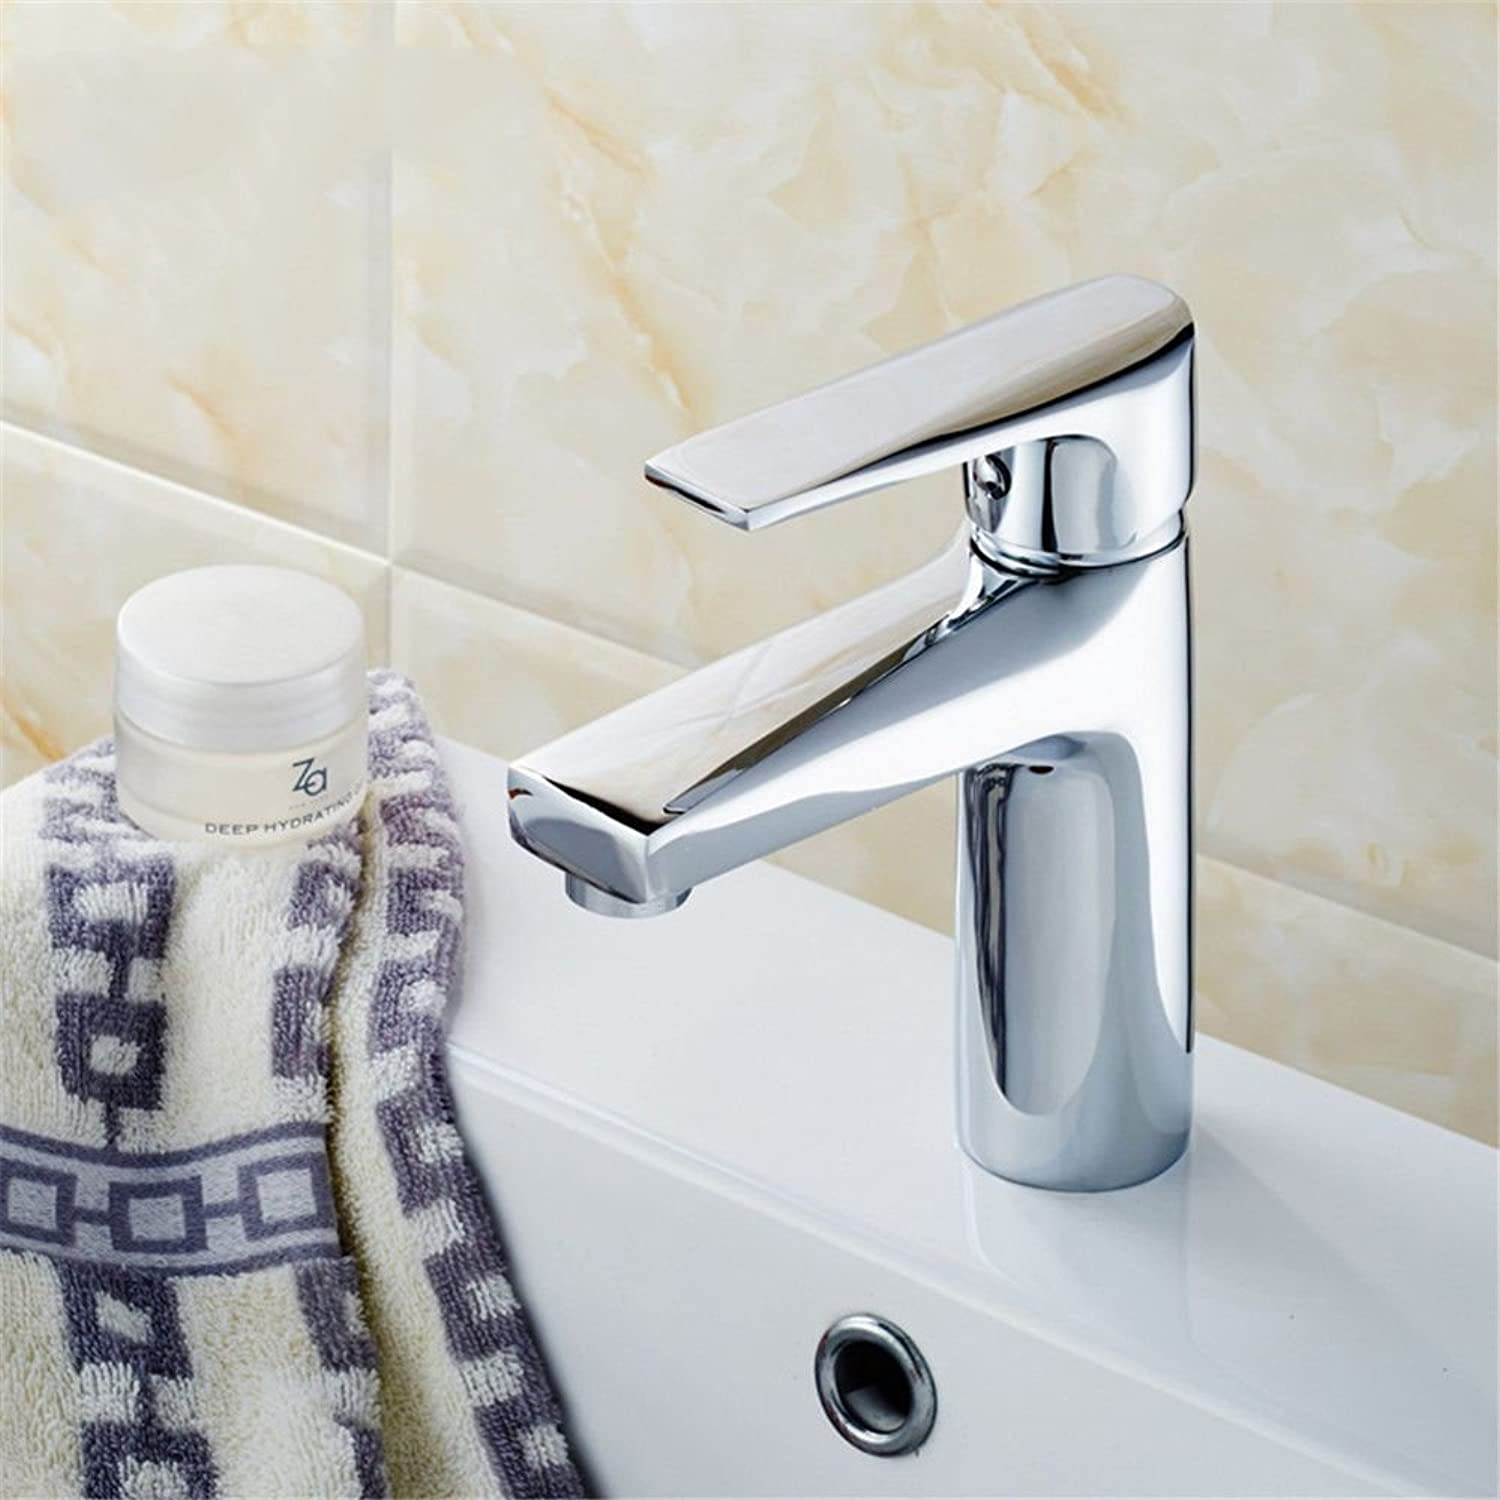 ETERNAL QUALITY Bathroom Sink Basin Tap Brass Mixer Tap Washroom Mixer Faucet Basin taps full copper hot and cold basin home-on-the-water tap on the bathroom sink Faucet